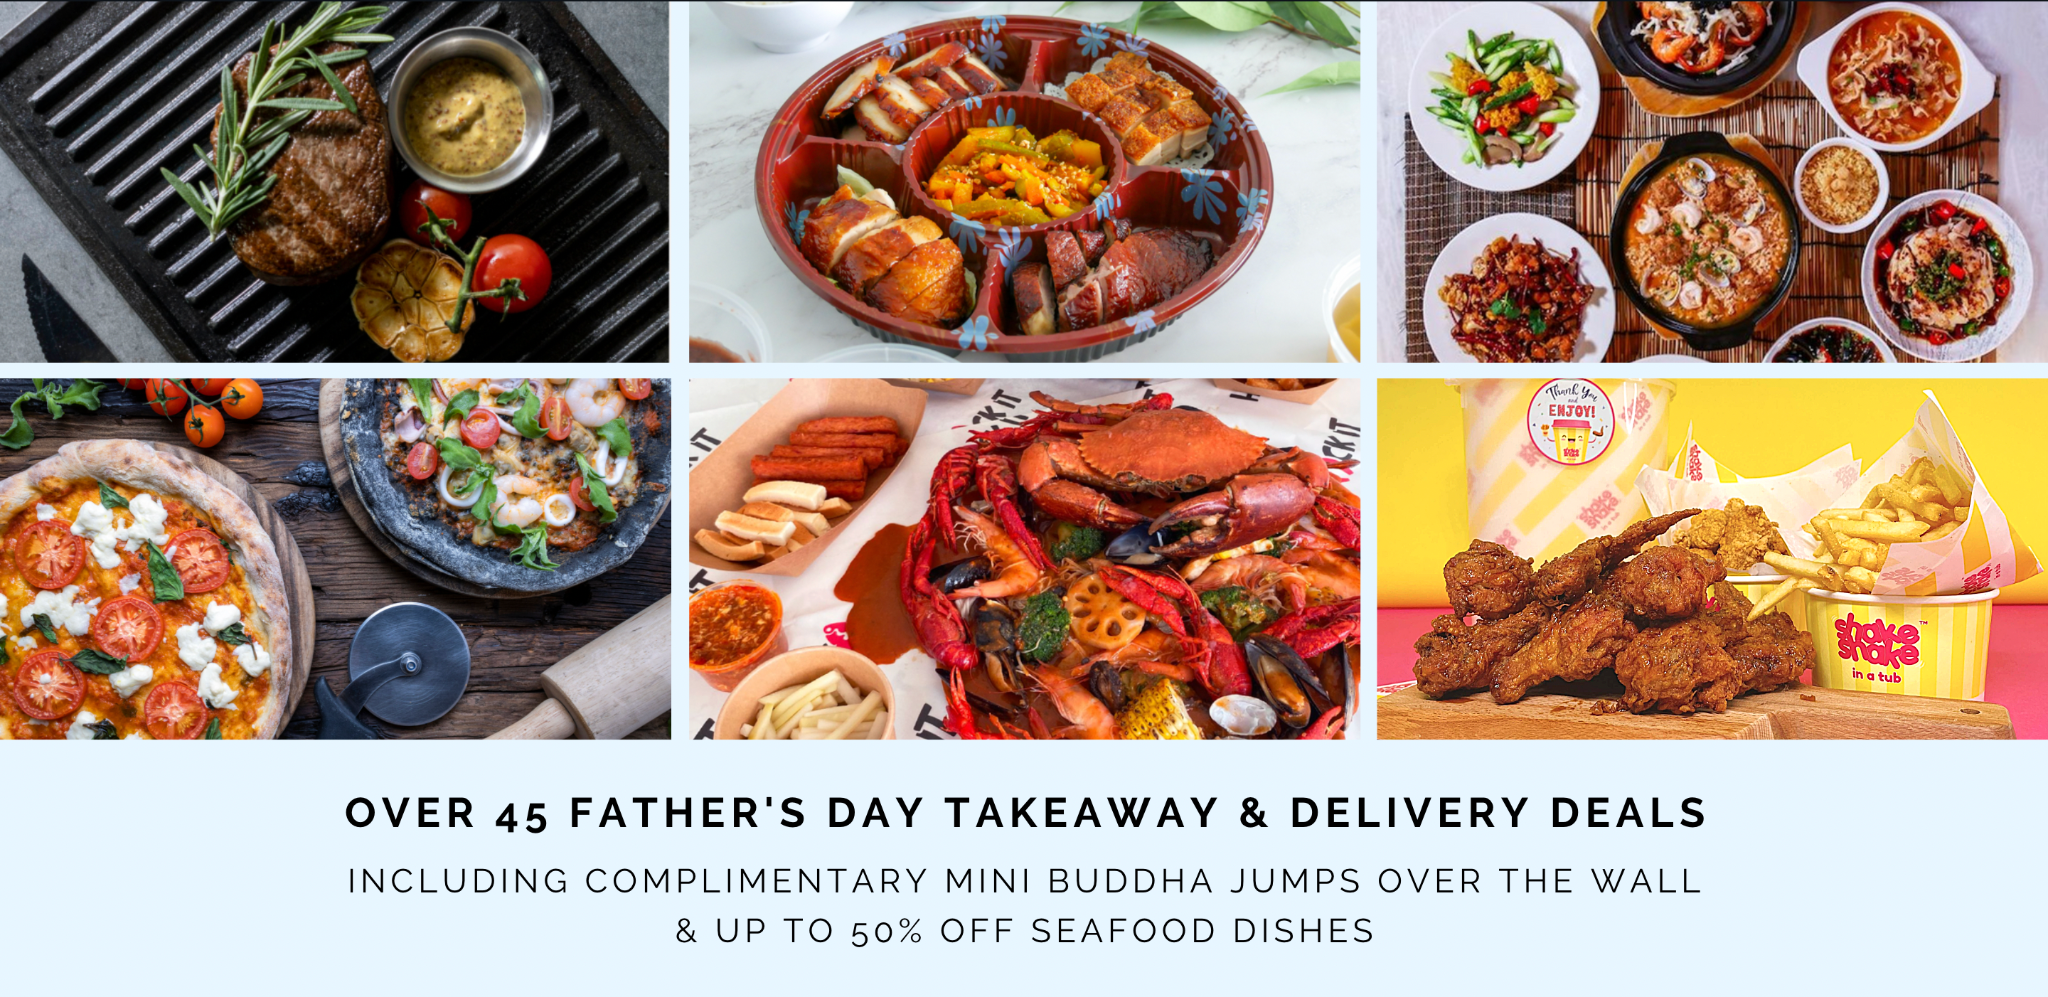 Over 45 Father's Day takeaway & delivery deals including complimentary Mini Buddha Jumps Over The Wall & up to 50% off Seafood Dishes